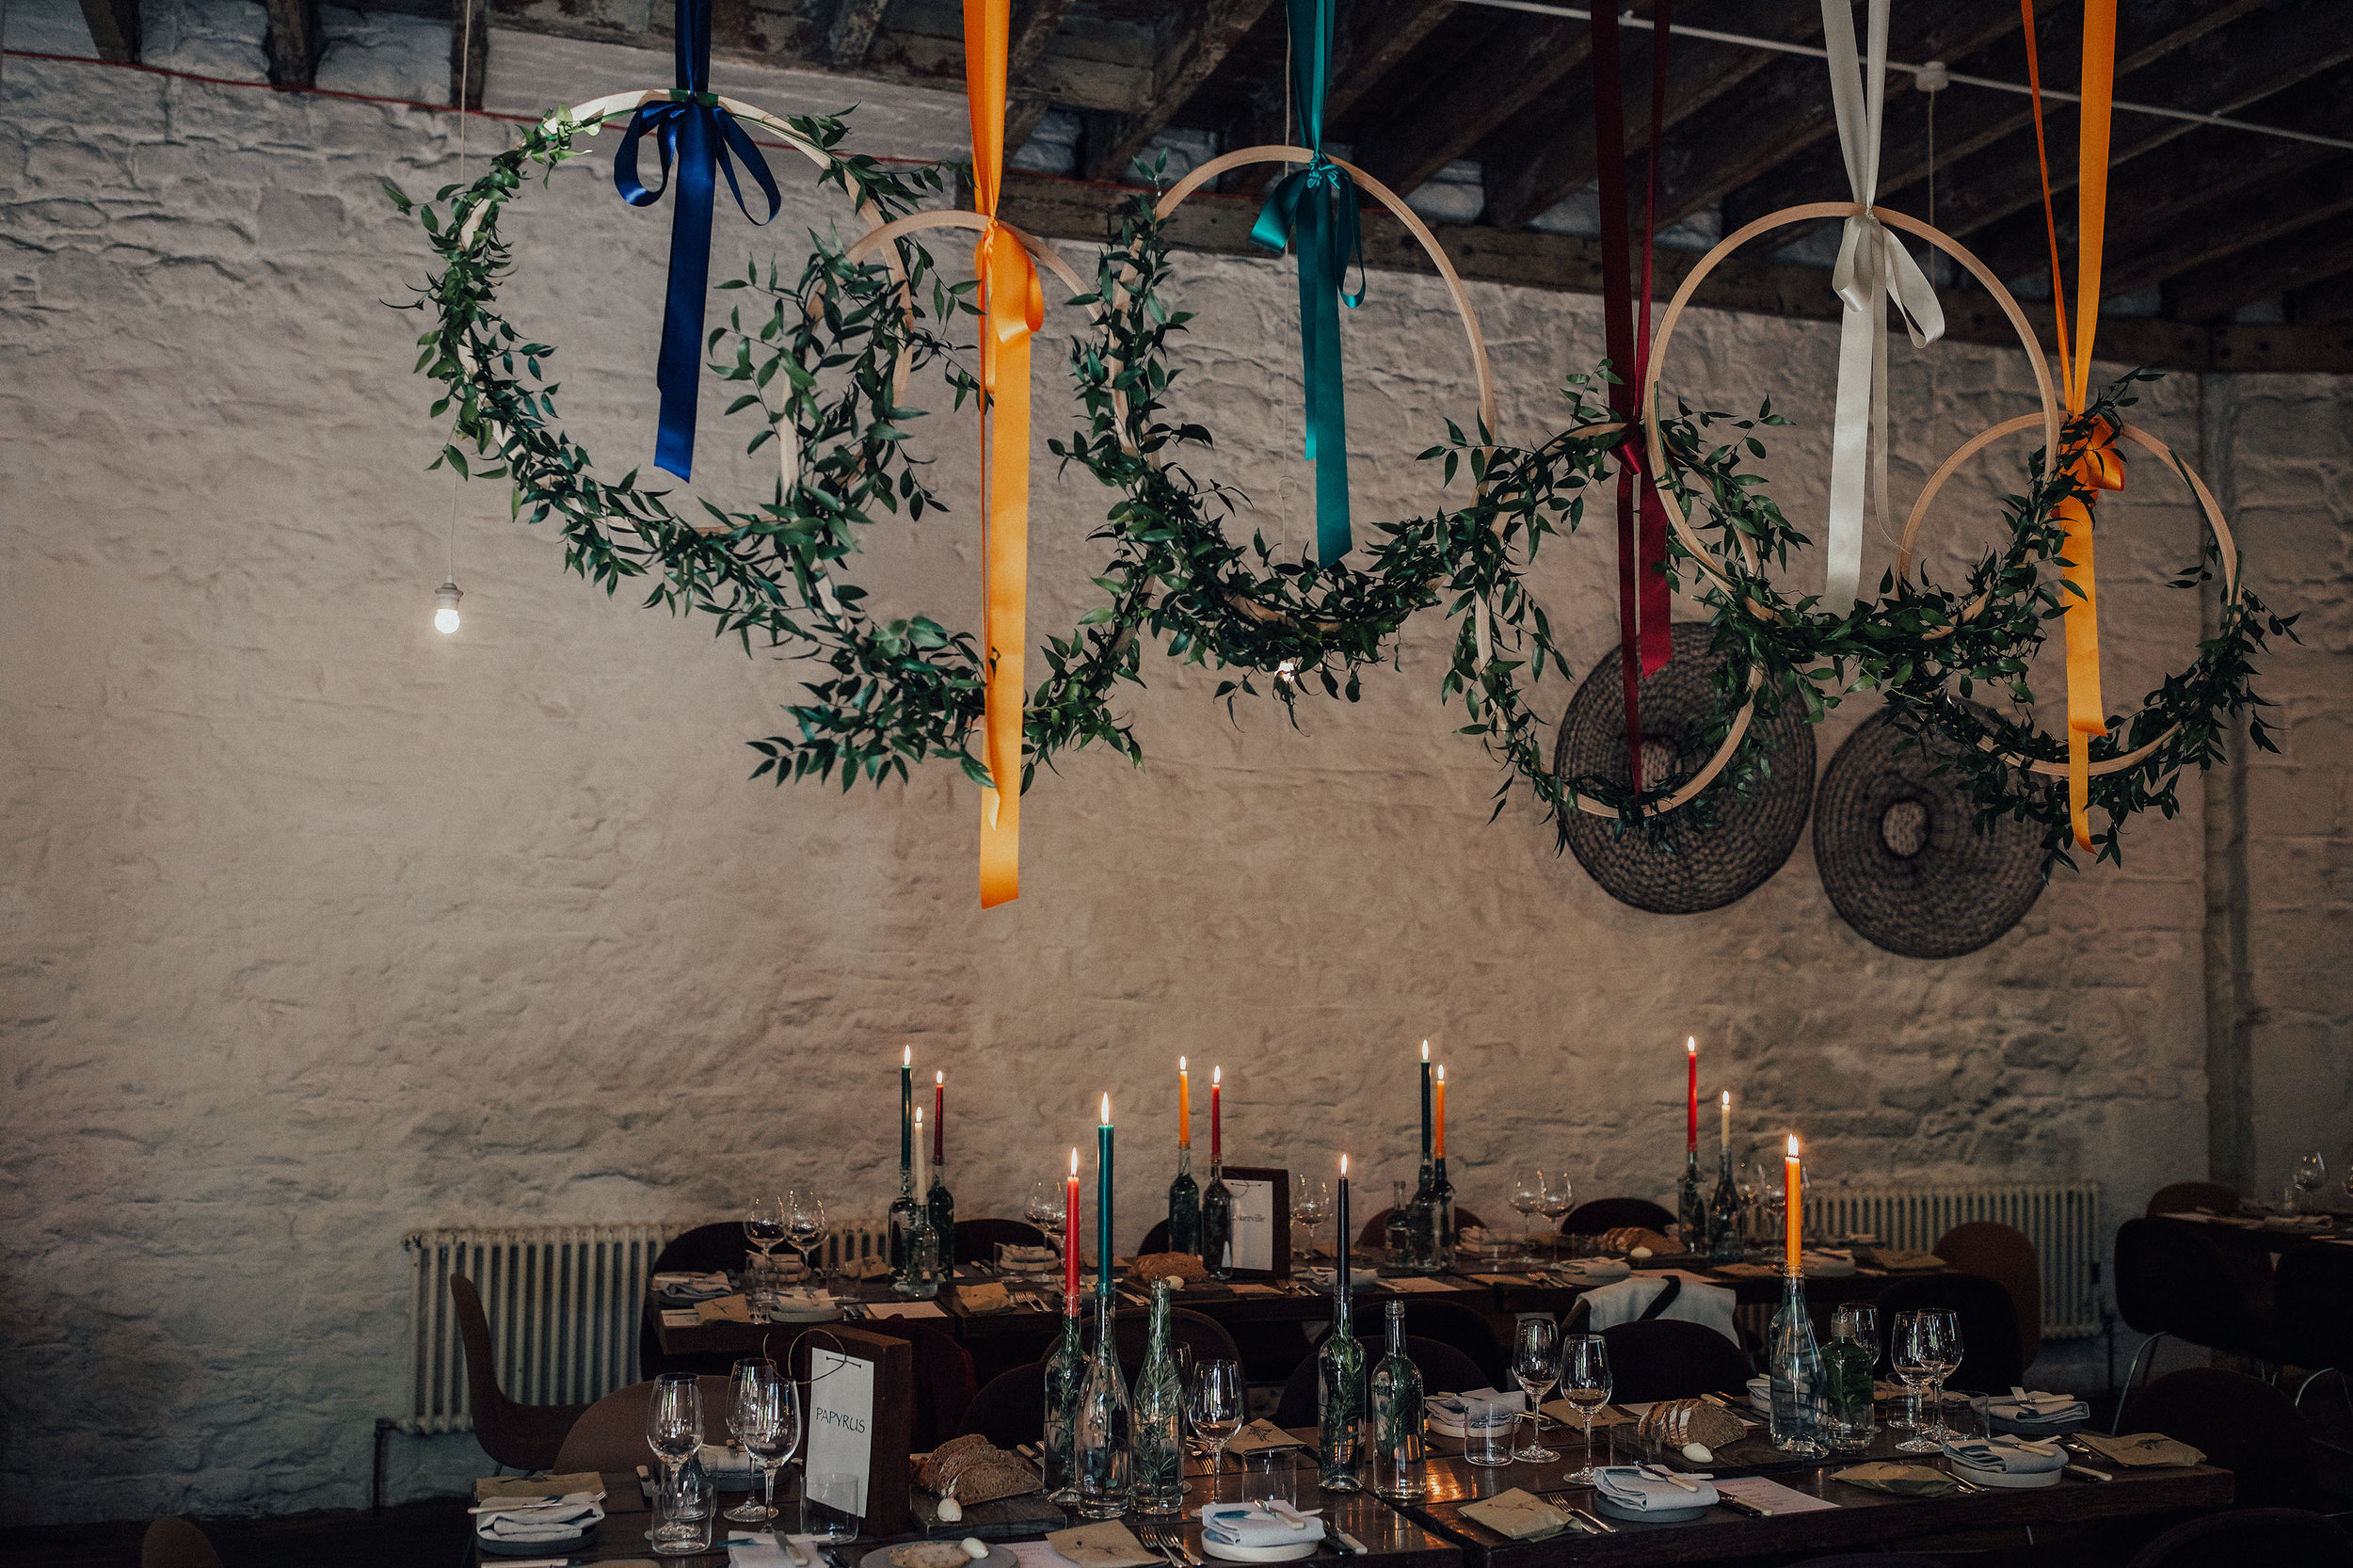 TIMBERYARD_EDINBURGH_WEDDING_PJ_PHILLIPS_PHOTOGRAPHY_161.jpg